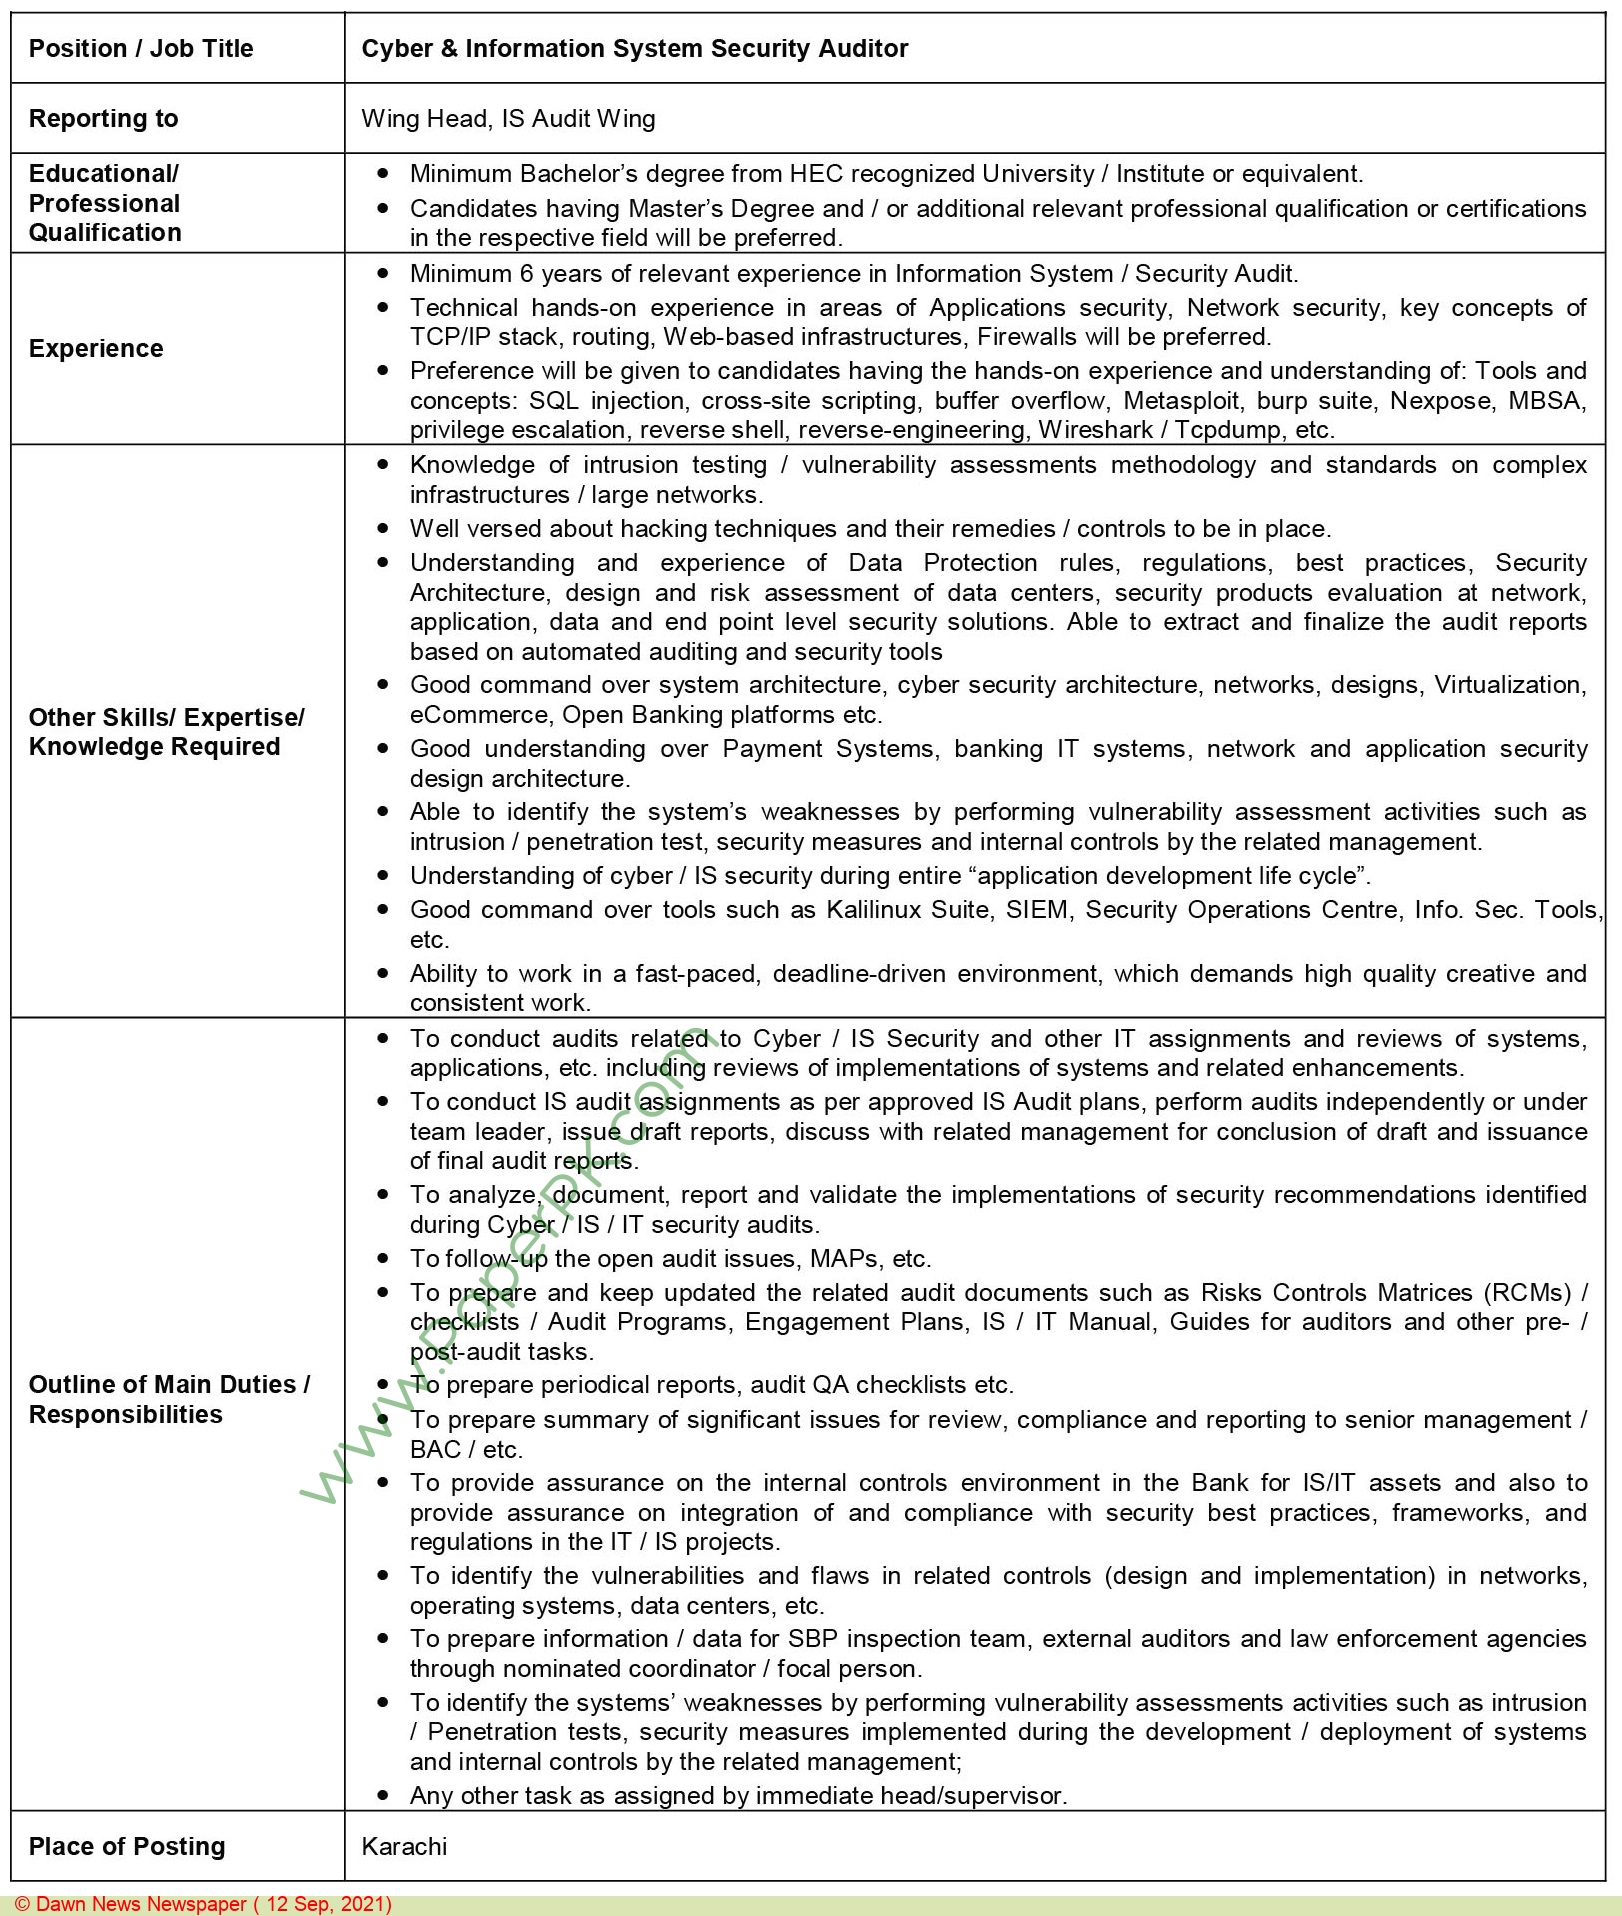 Sidat Hyder Morshed Associates Private Limited jobs newspaper ad for Cyber & Information System Security Auditor in Karachi on 2021-09-12